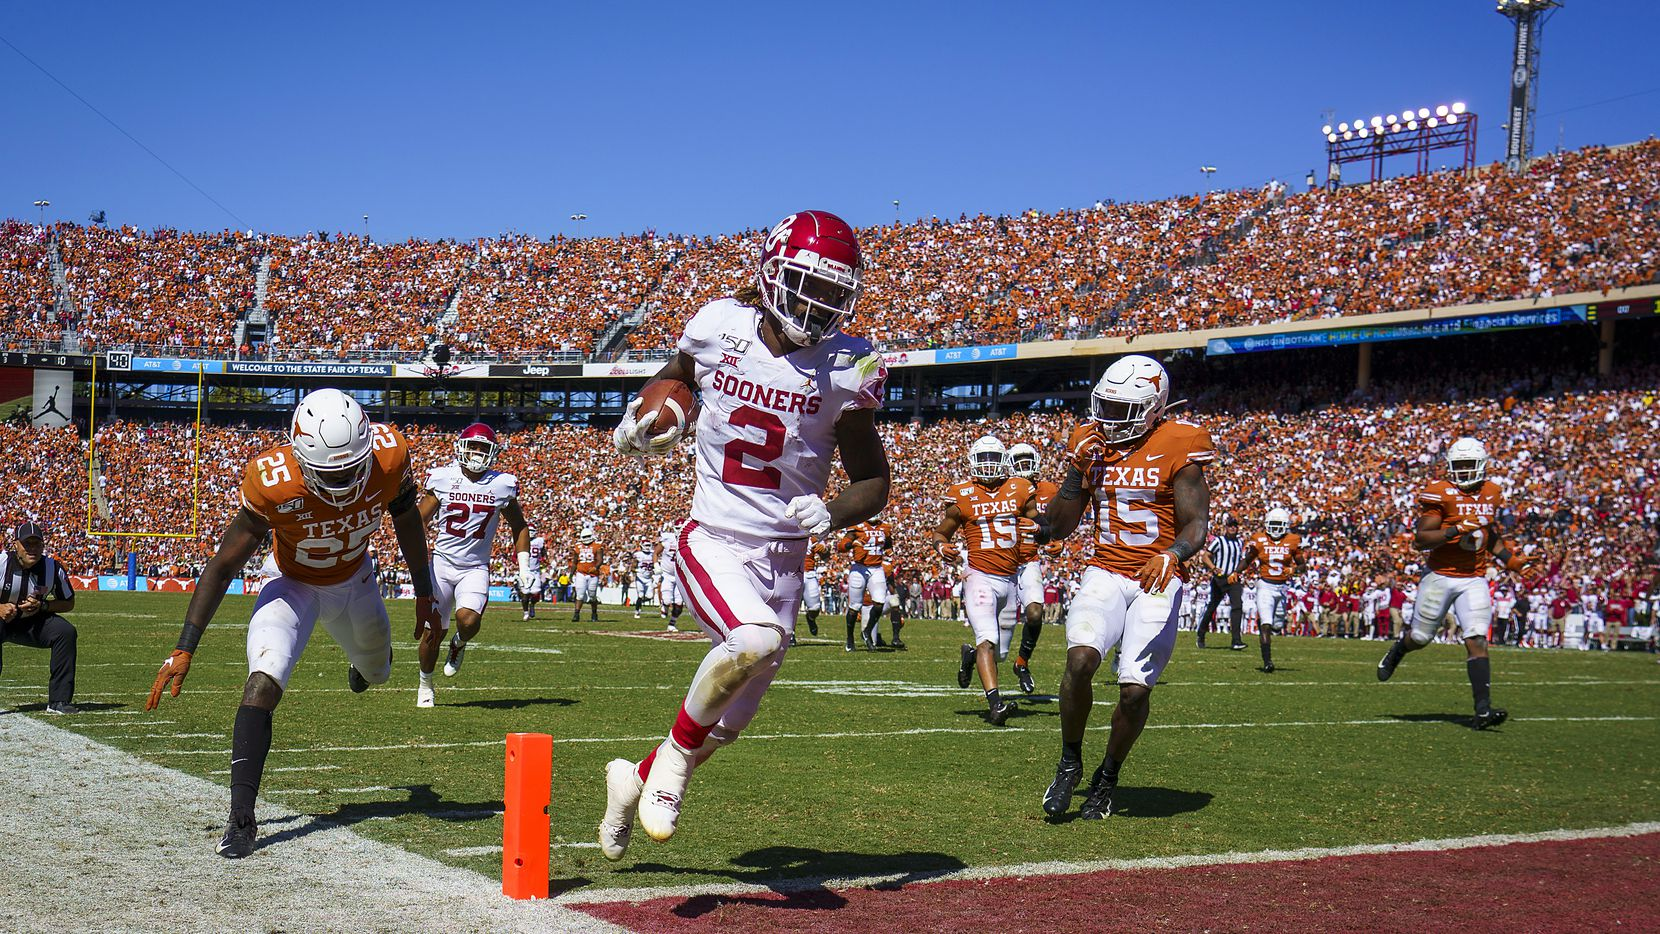 Oklahoma wide receiver CeeDee Lamb (2) scores on a 51-yard pass play past Texas defensives back B.J. Foster (25) and Chris Brown (15) during the second half of an NCAA football game at the Cotton Bowl on Saturday, Oct. 12, 2019, in Dallas. Oklahoma won the the game 34-27.